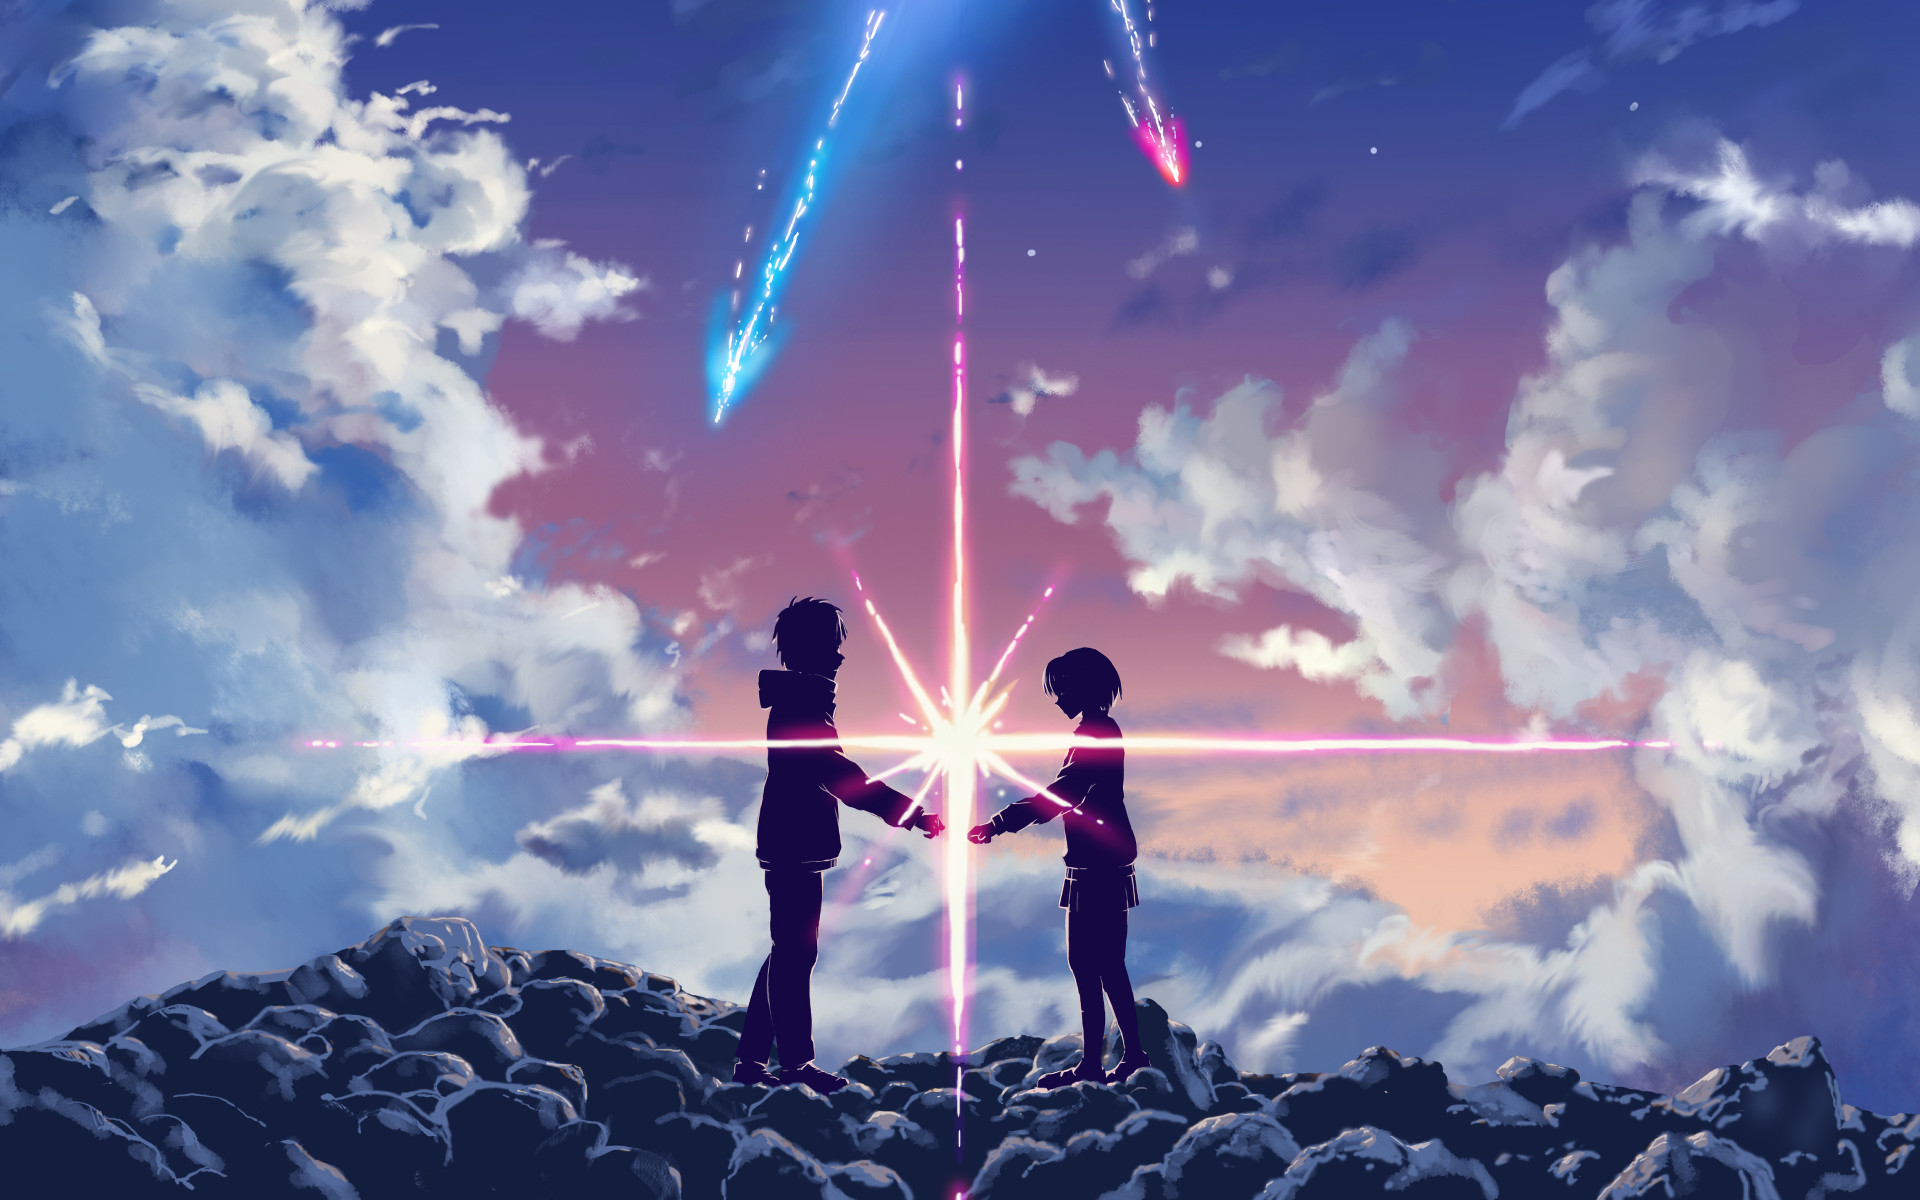 Anime wallpapers for laptop 65 images - Anime backdrop wallpaper ...